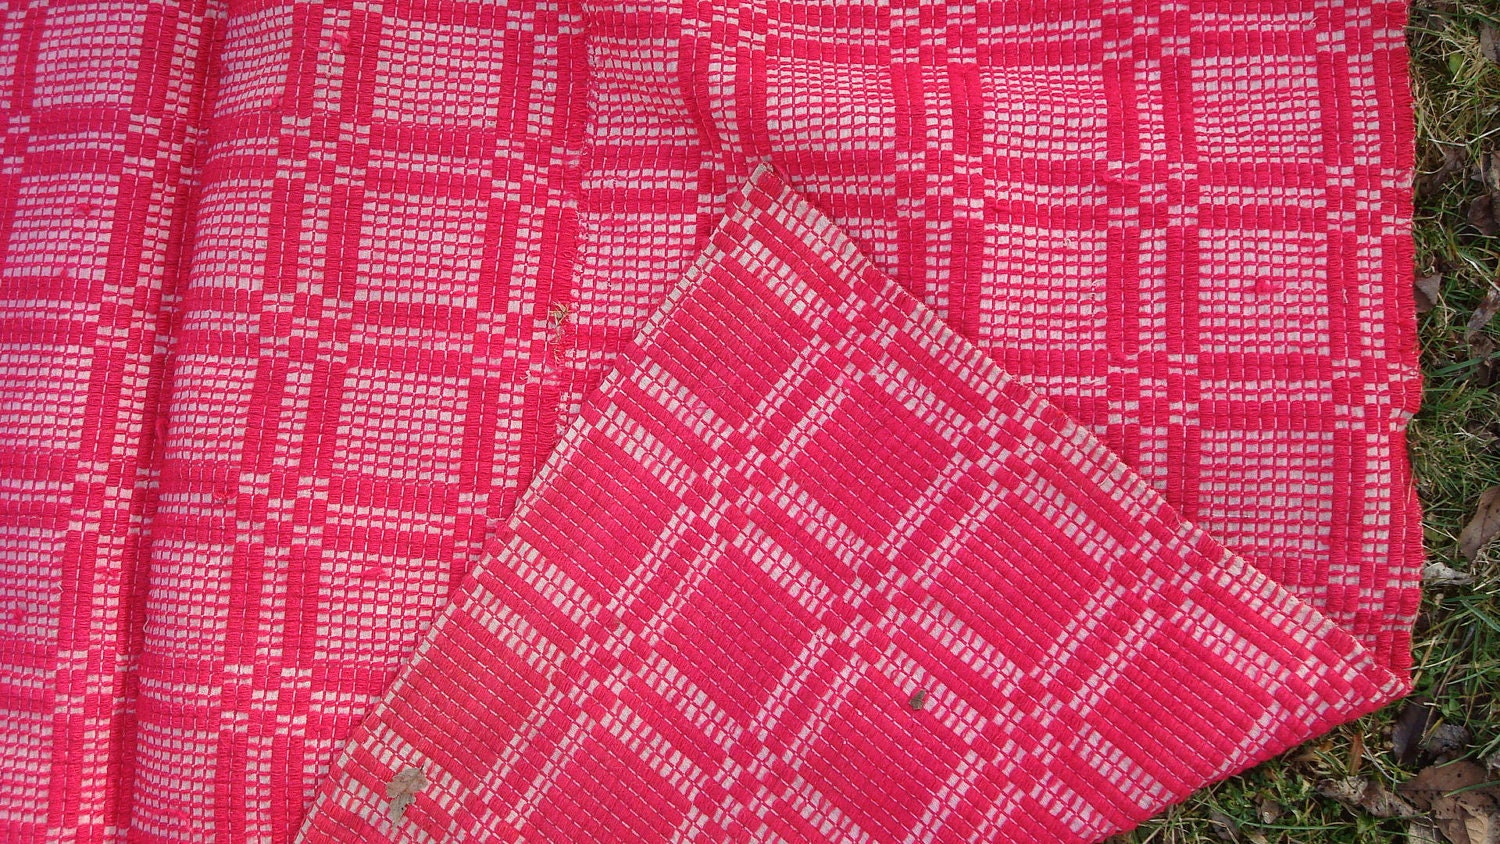 Woven Coverlet Raspberry Red Antique Textile By